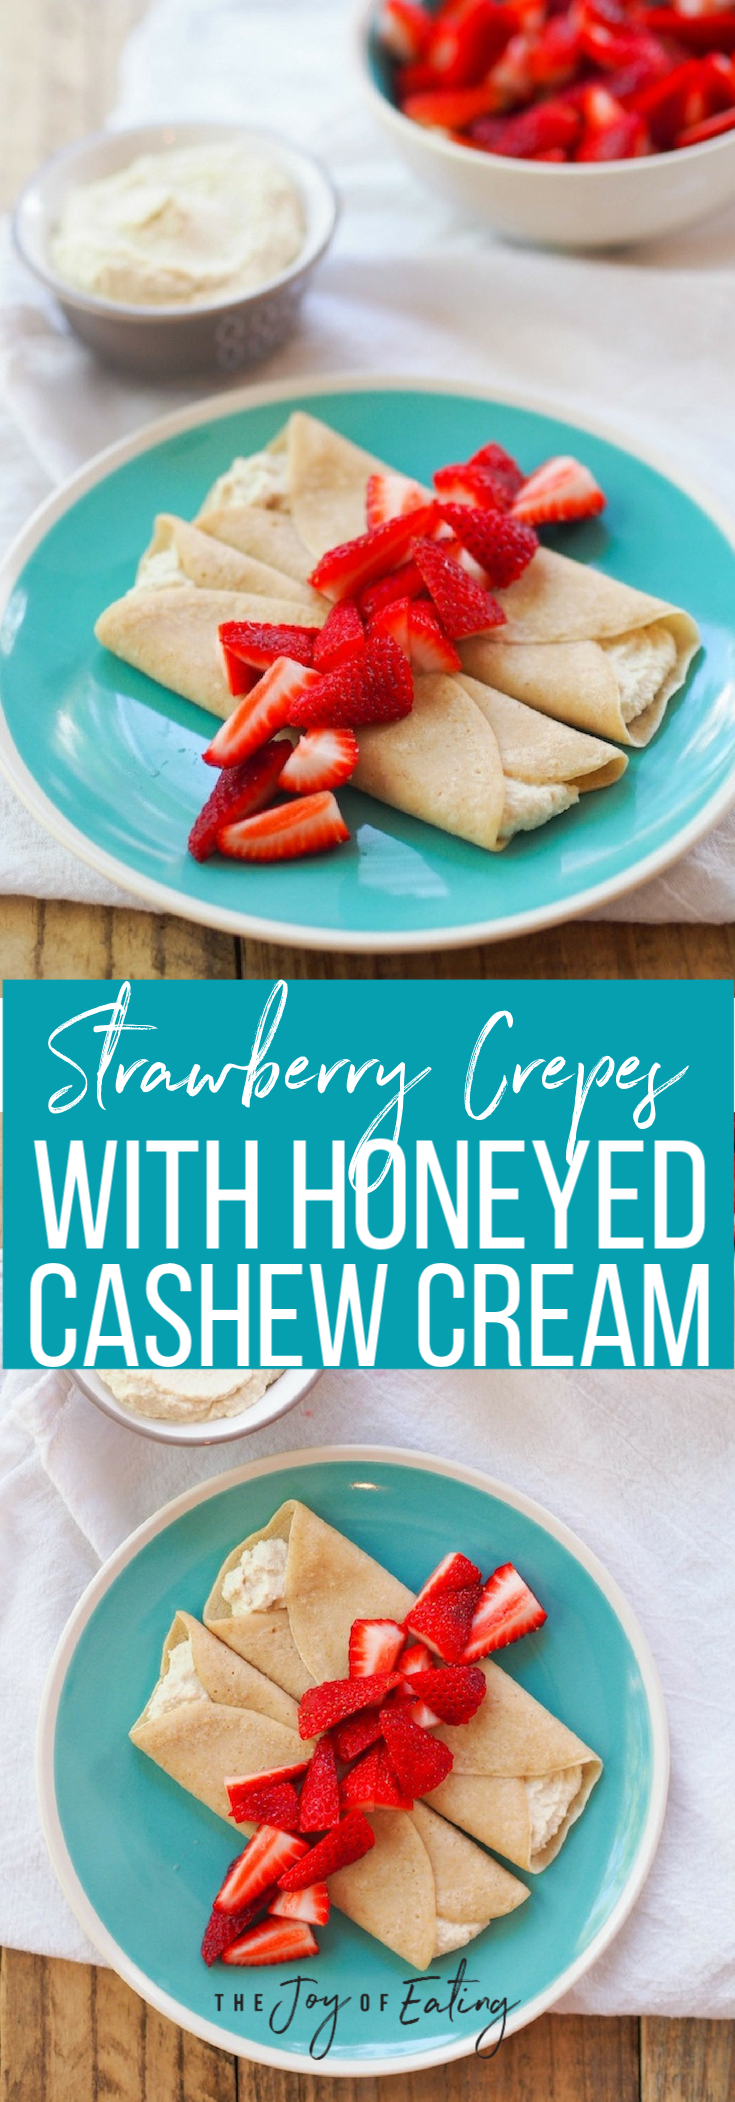 Easy strawberry crepes with honeyed cashew cream! #vegan #vegetarian #crepes #strawberry #spring #dessert #dairyfree